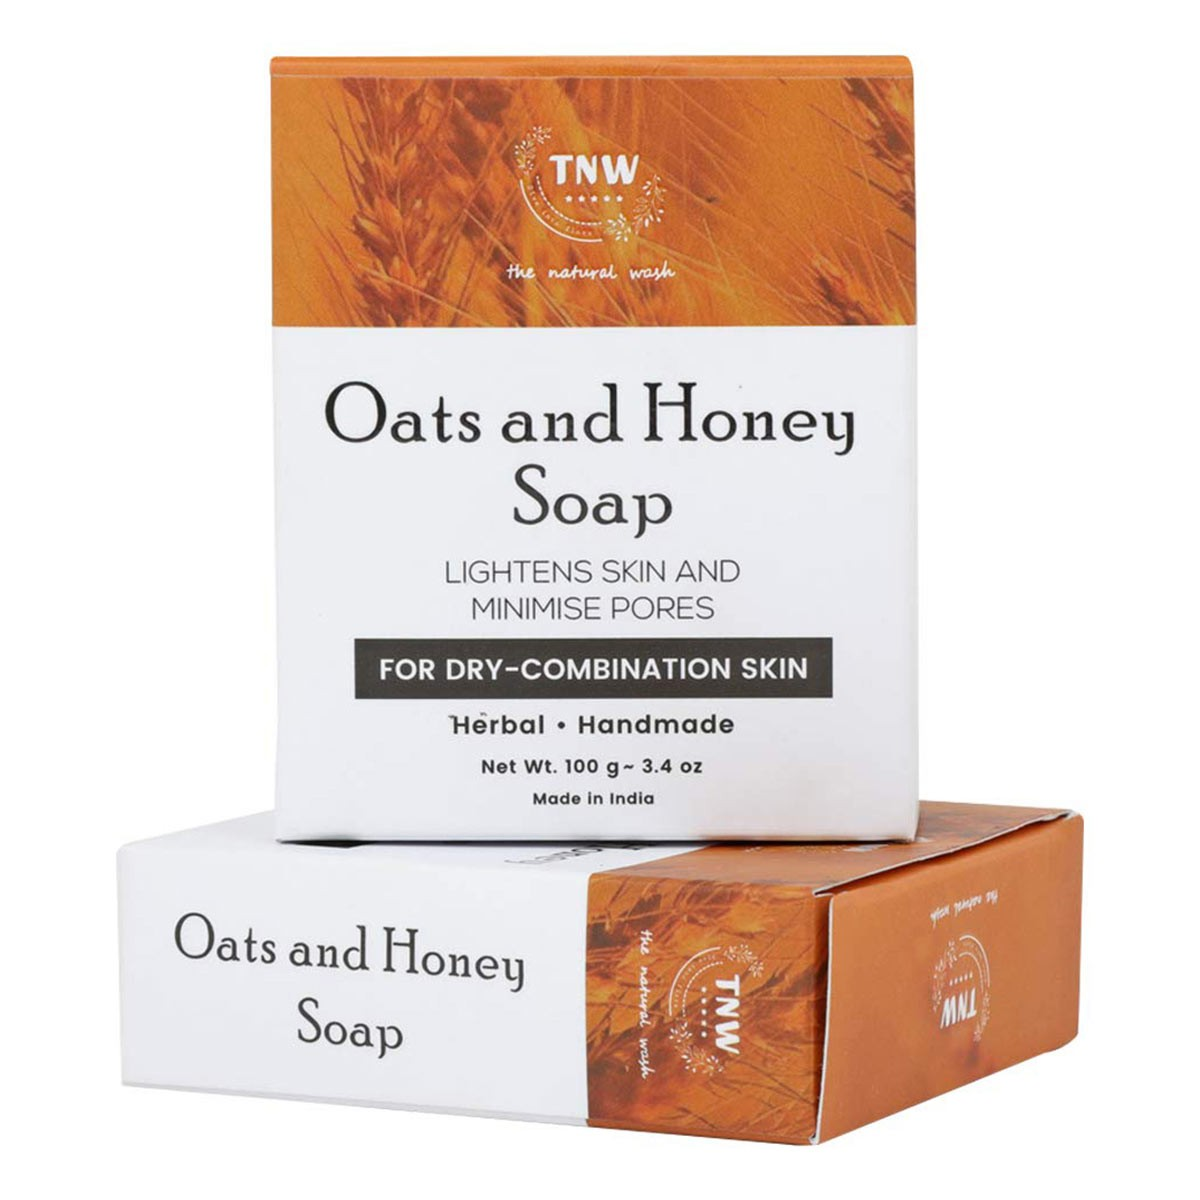 TNW - The Natural Wash OATS AND HONEY SOAP (100 g)